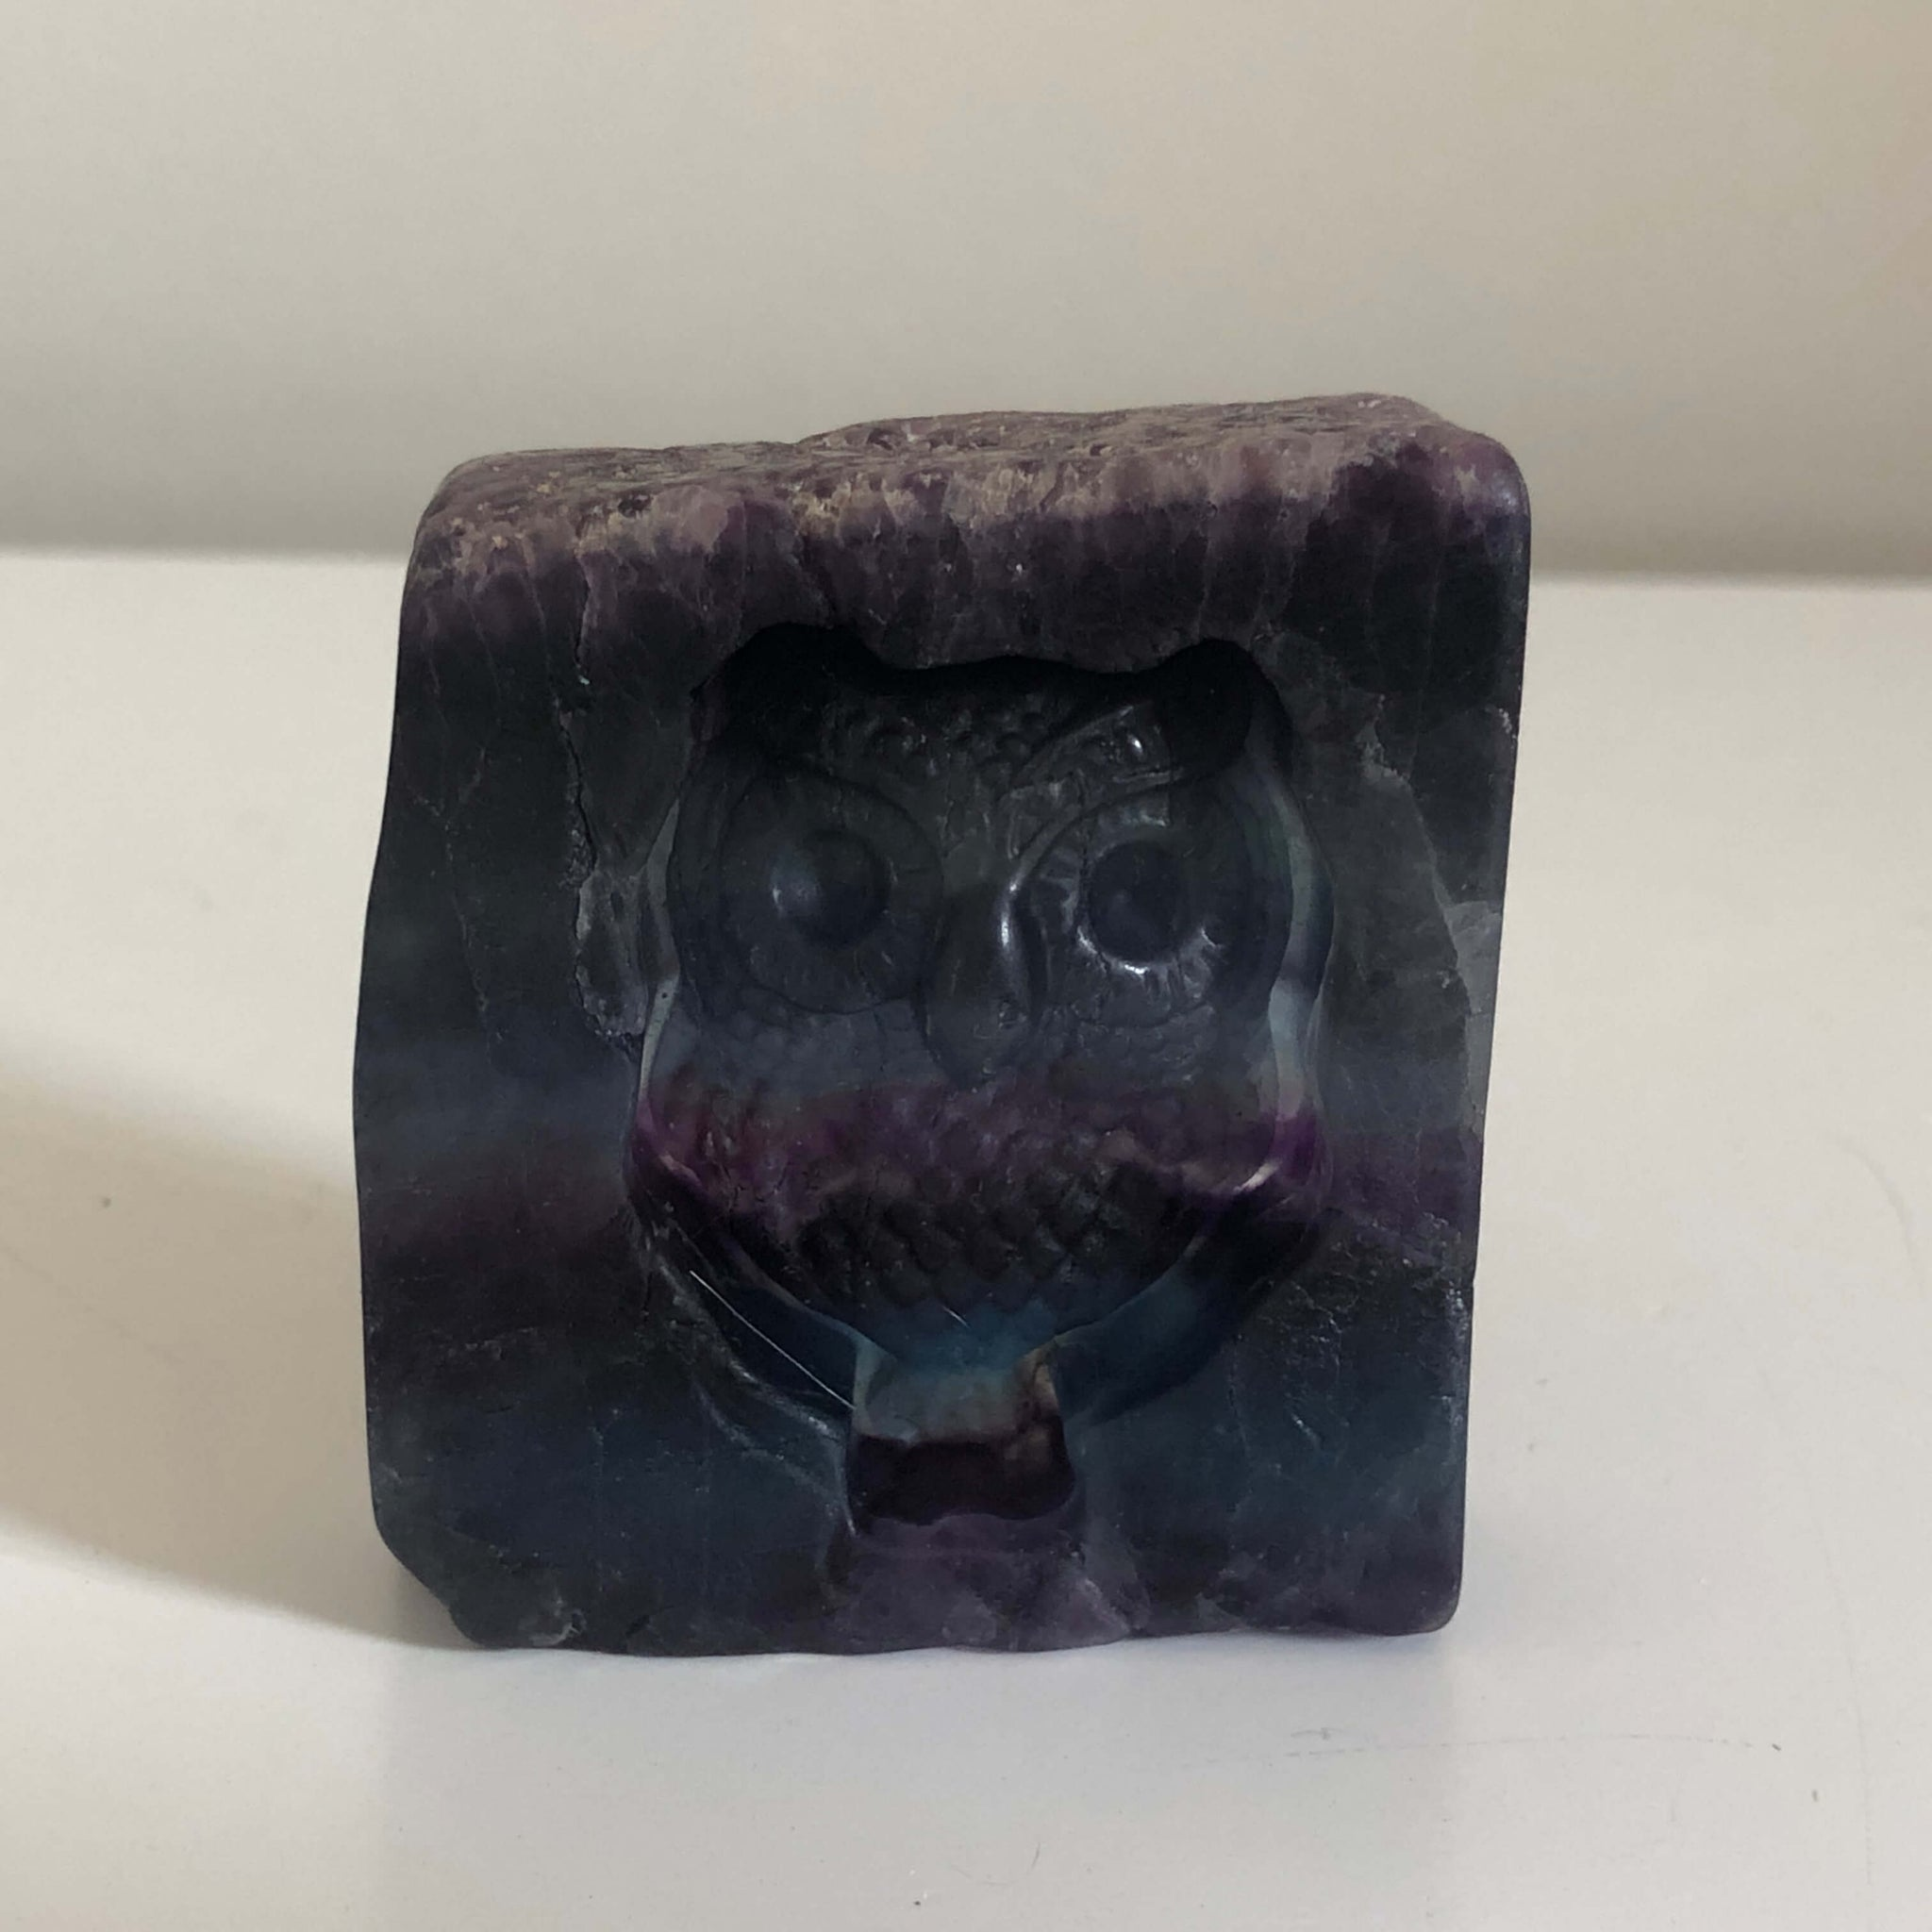 Fluorite Crystal with Owl Carving